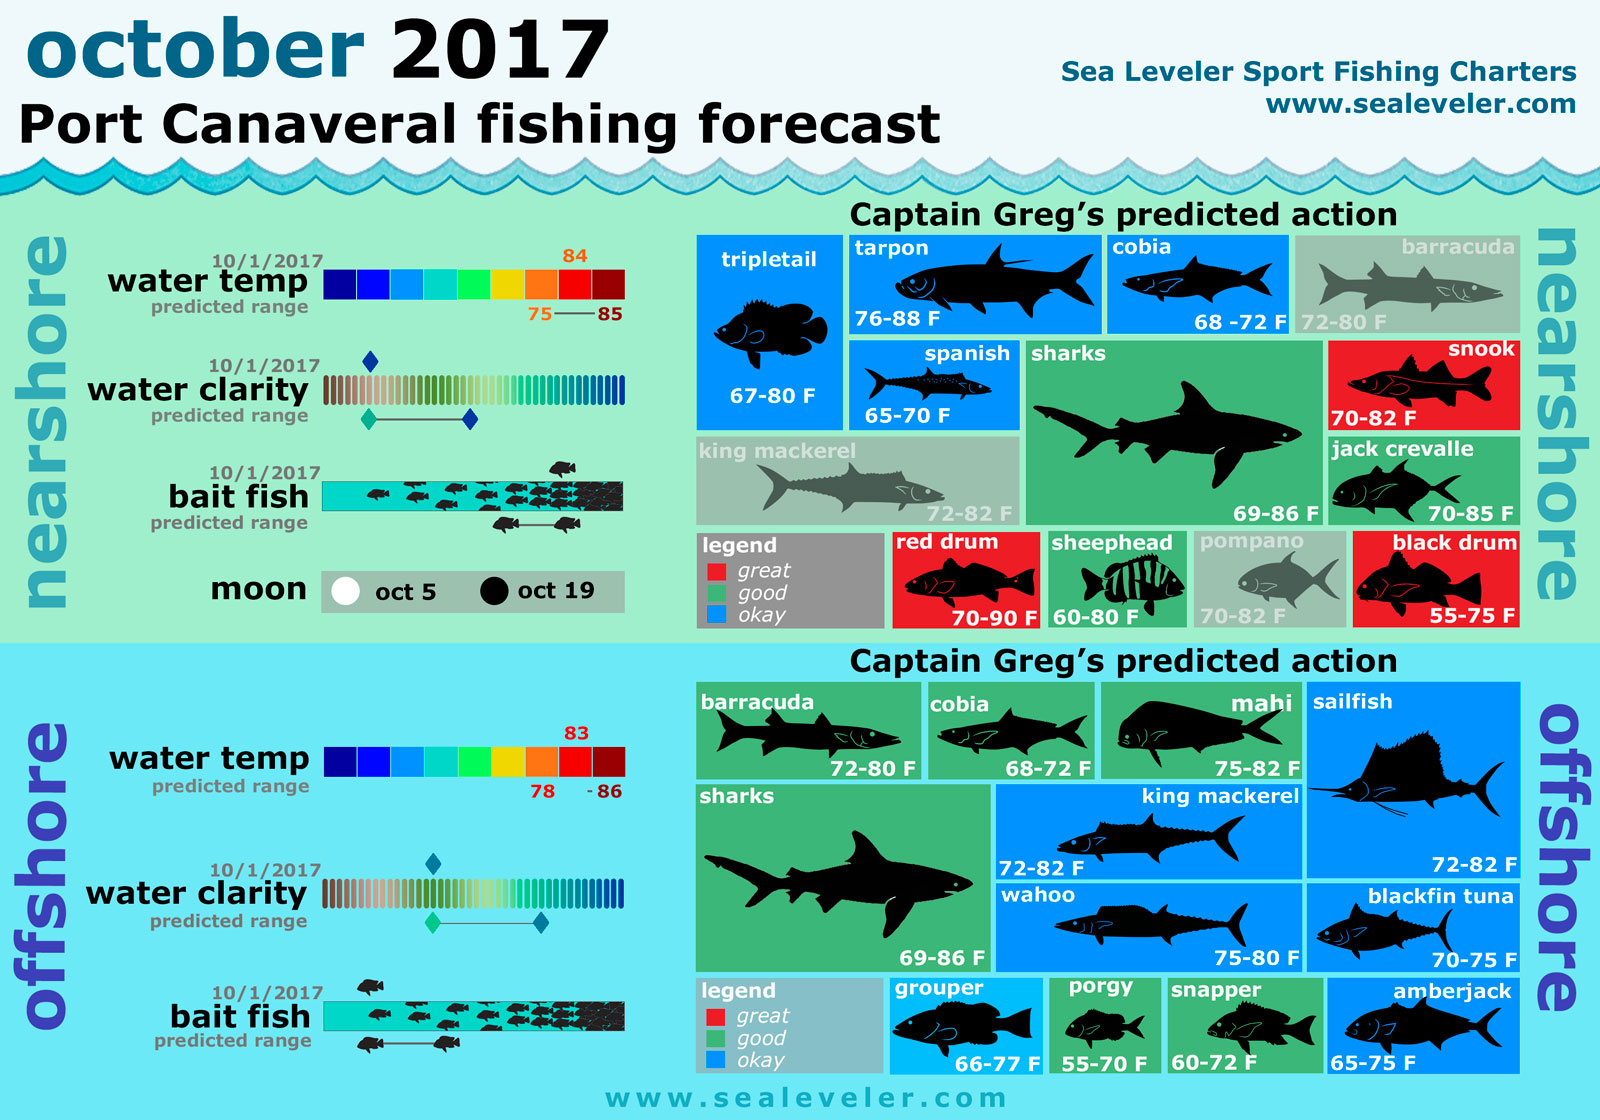 Port canaveral fishing report october 2017 sealeveler for Port canaveral fishing report